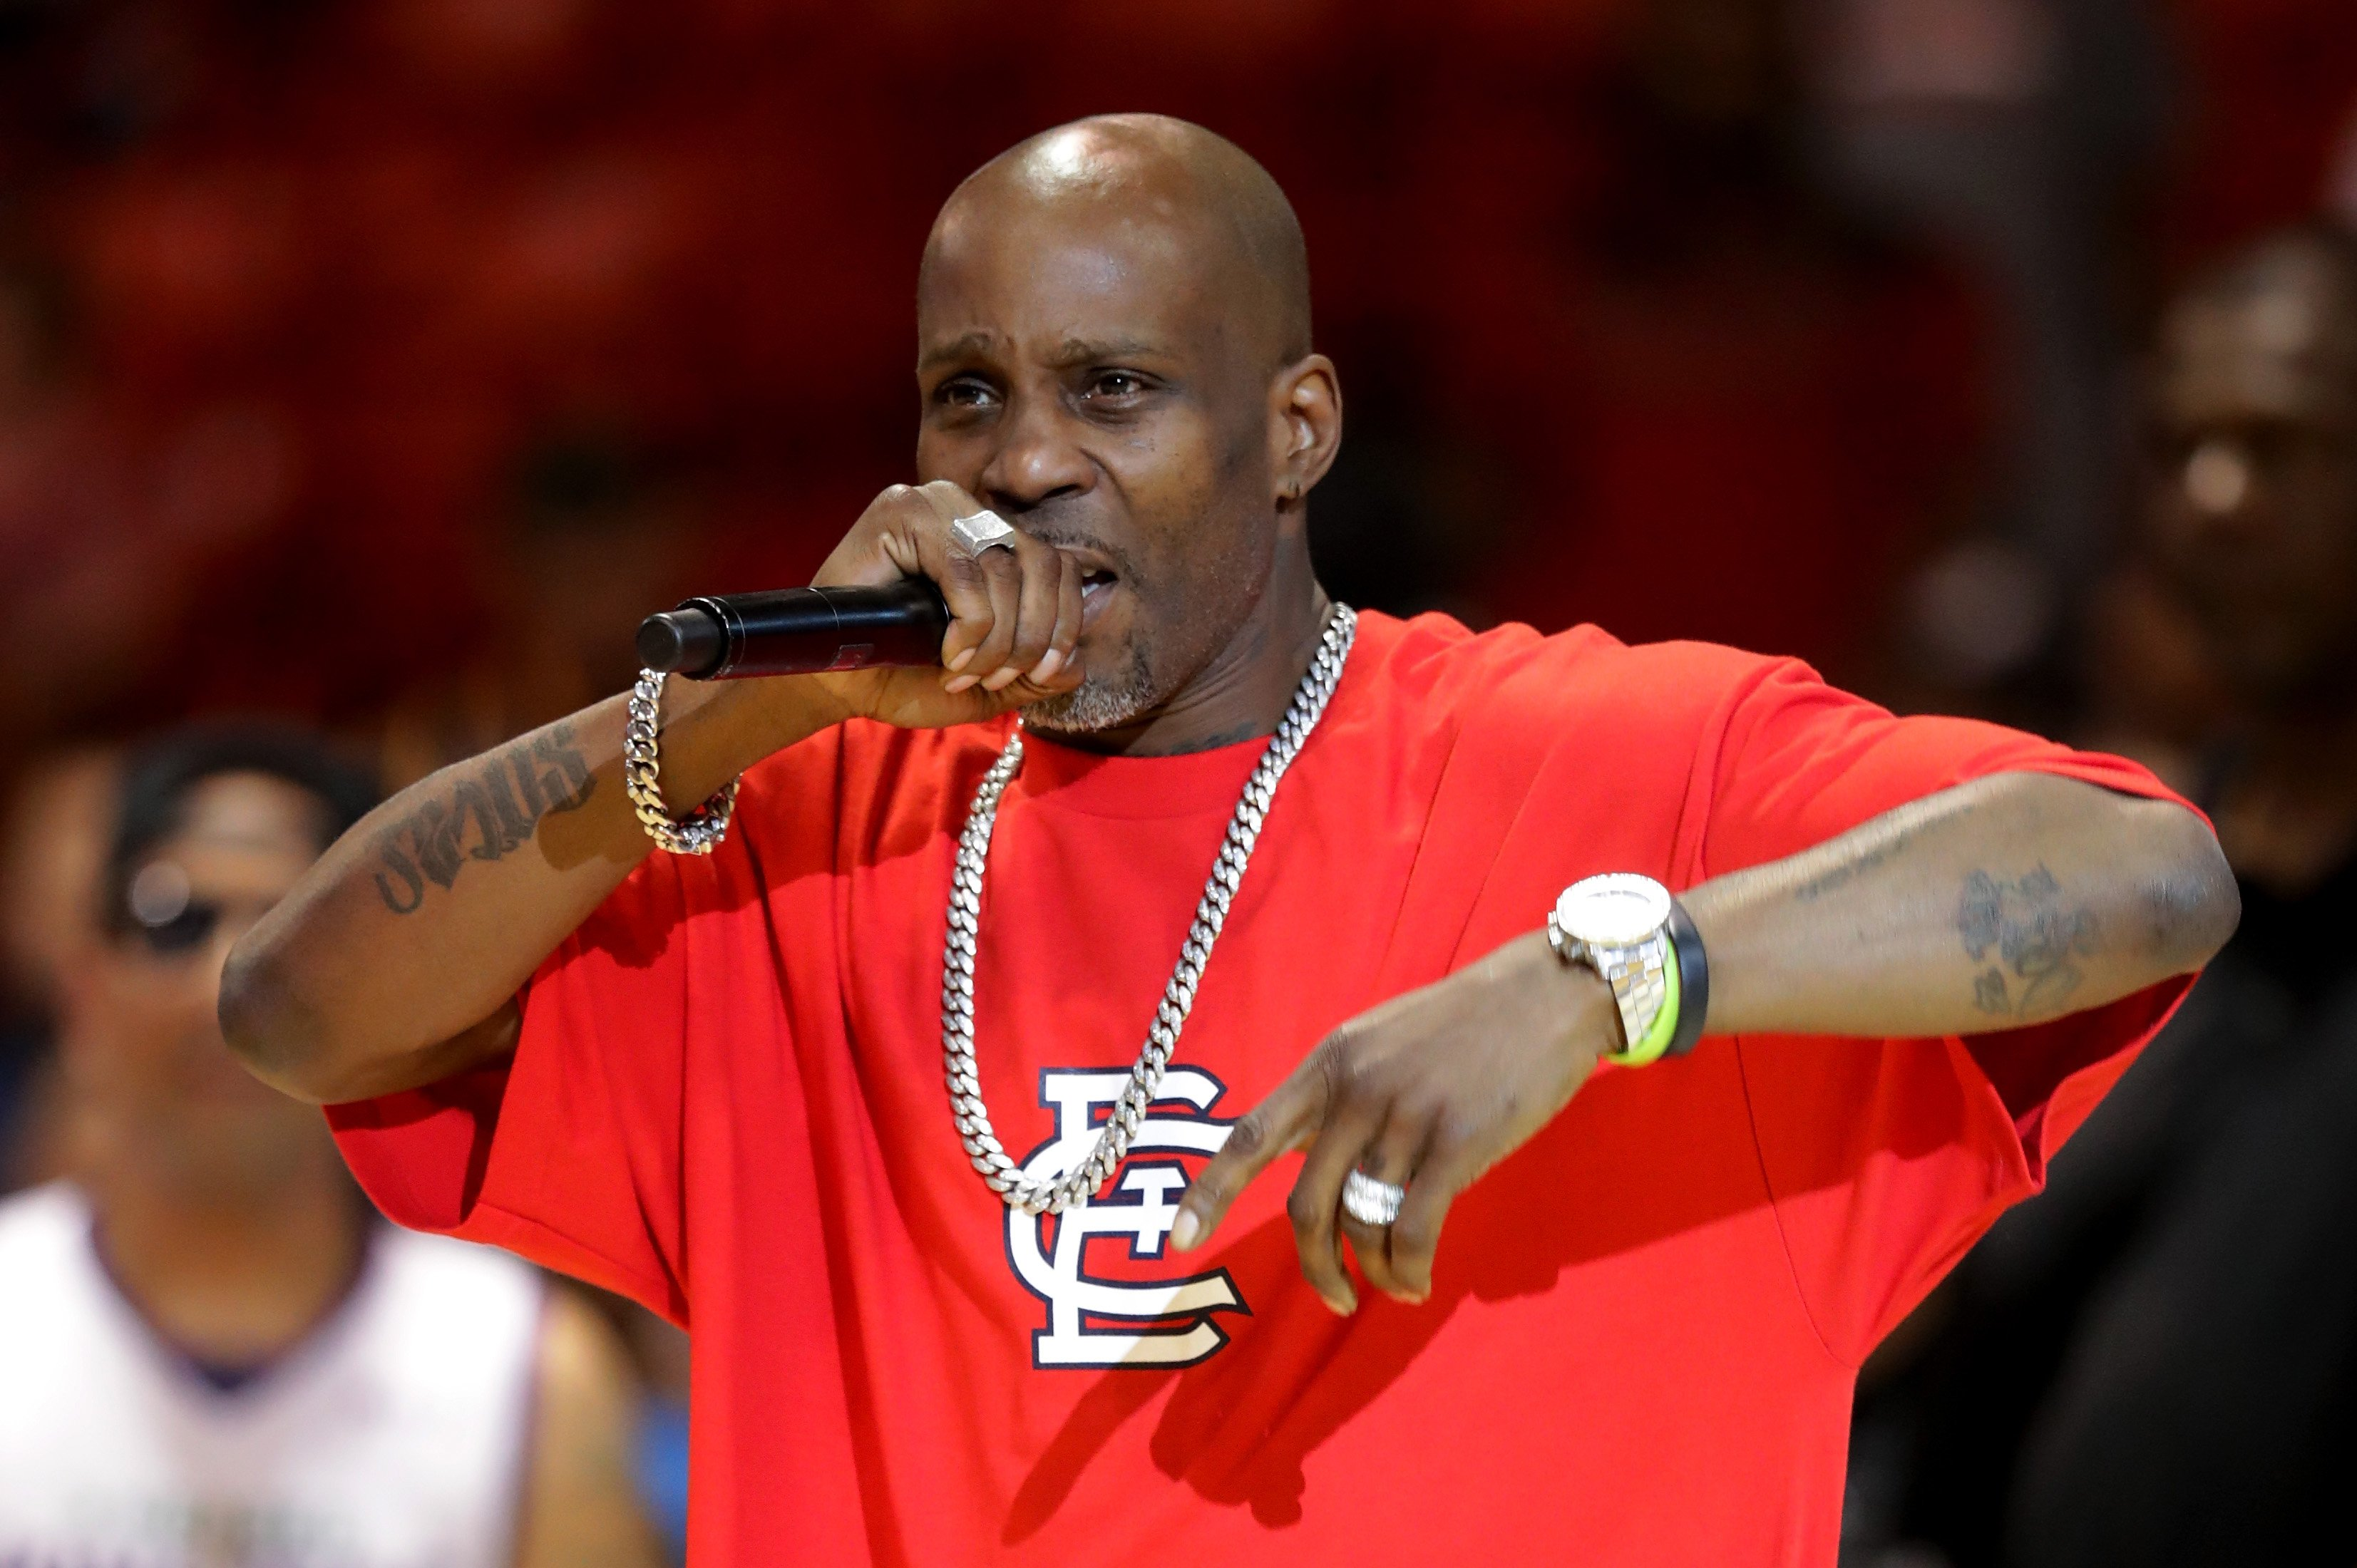 Rapper DMX performs during week five of the BIG3 three on three basketball league at UIC Pavilion on July 23, 2017 | Photo: Getty Images